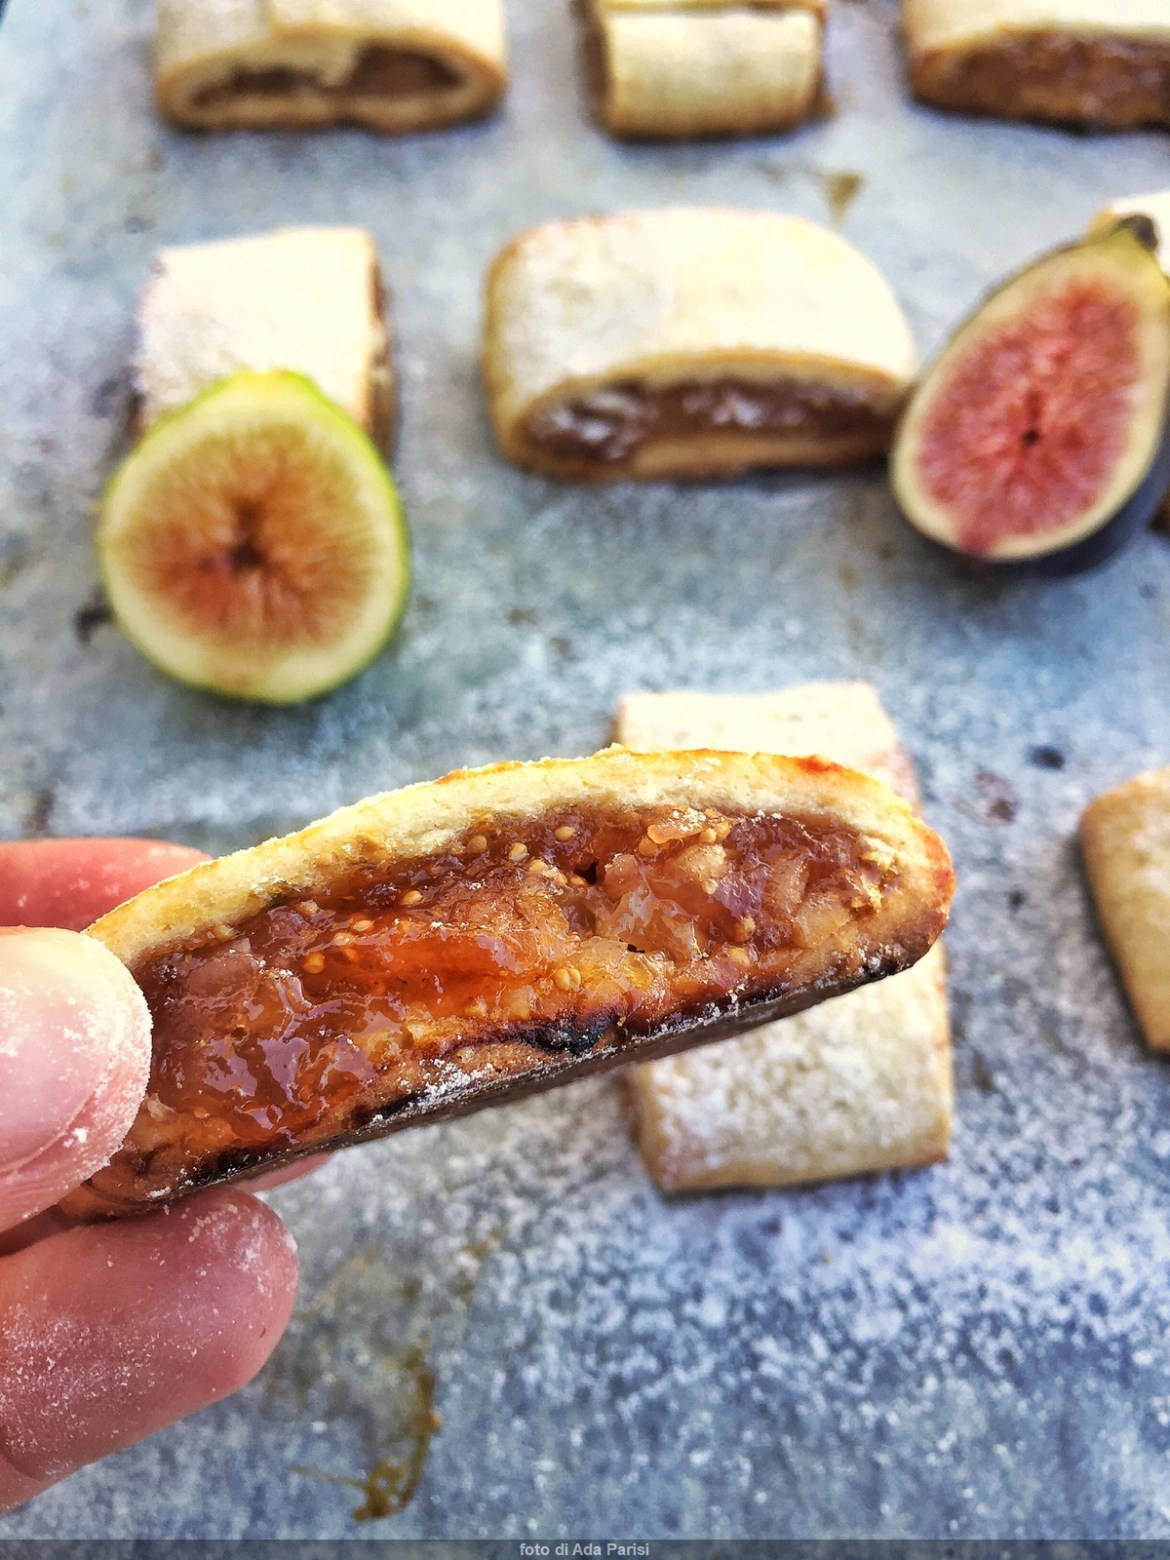 Biscuits with seven-year figs